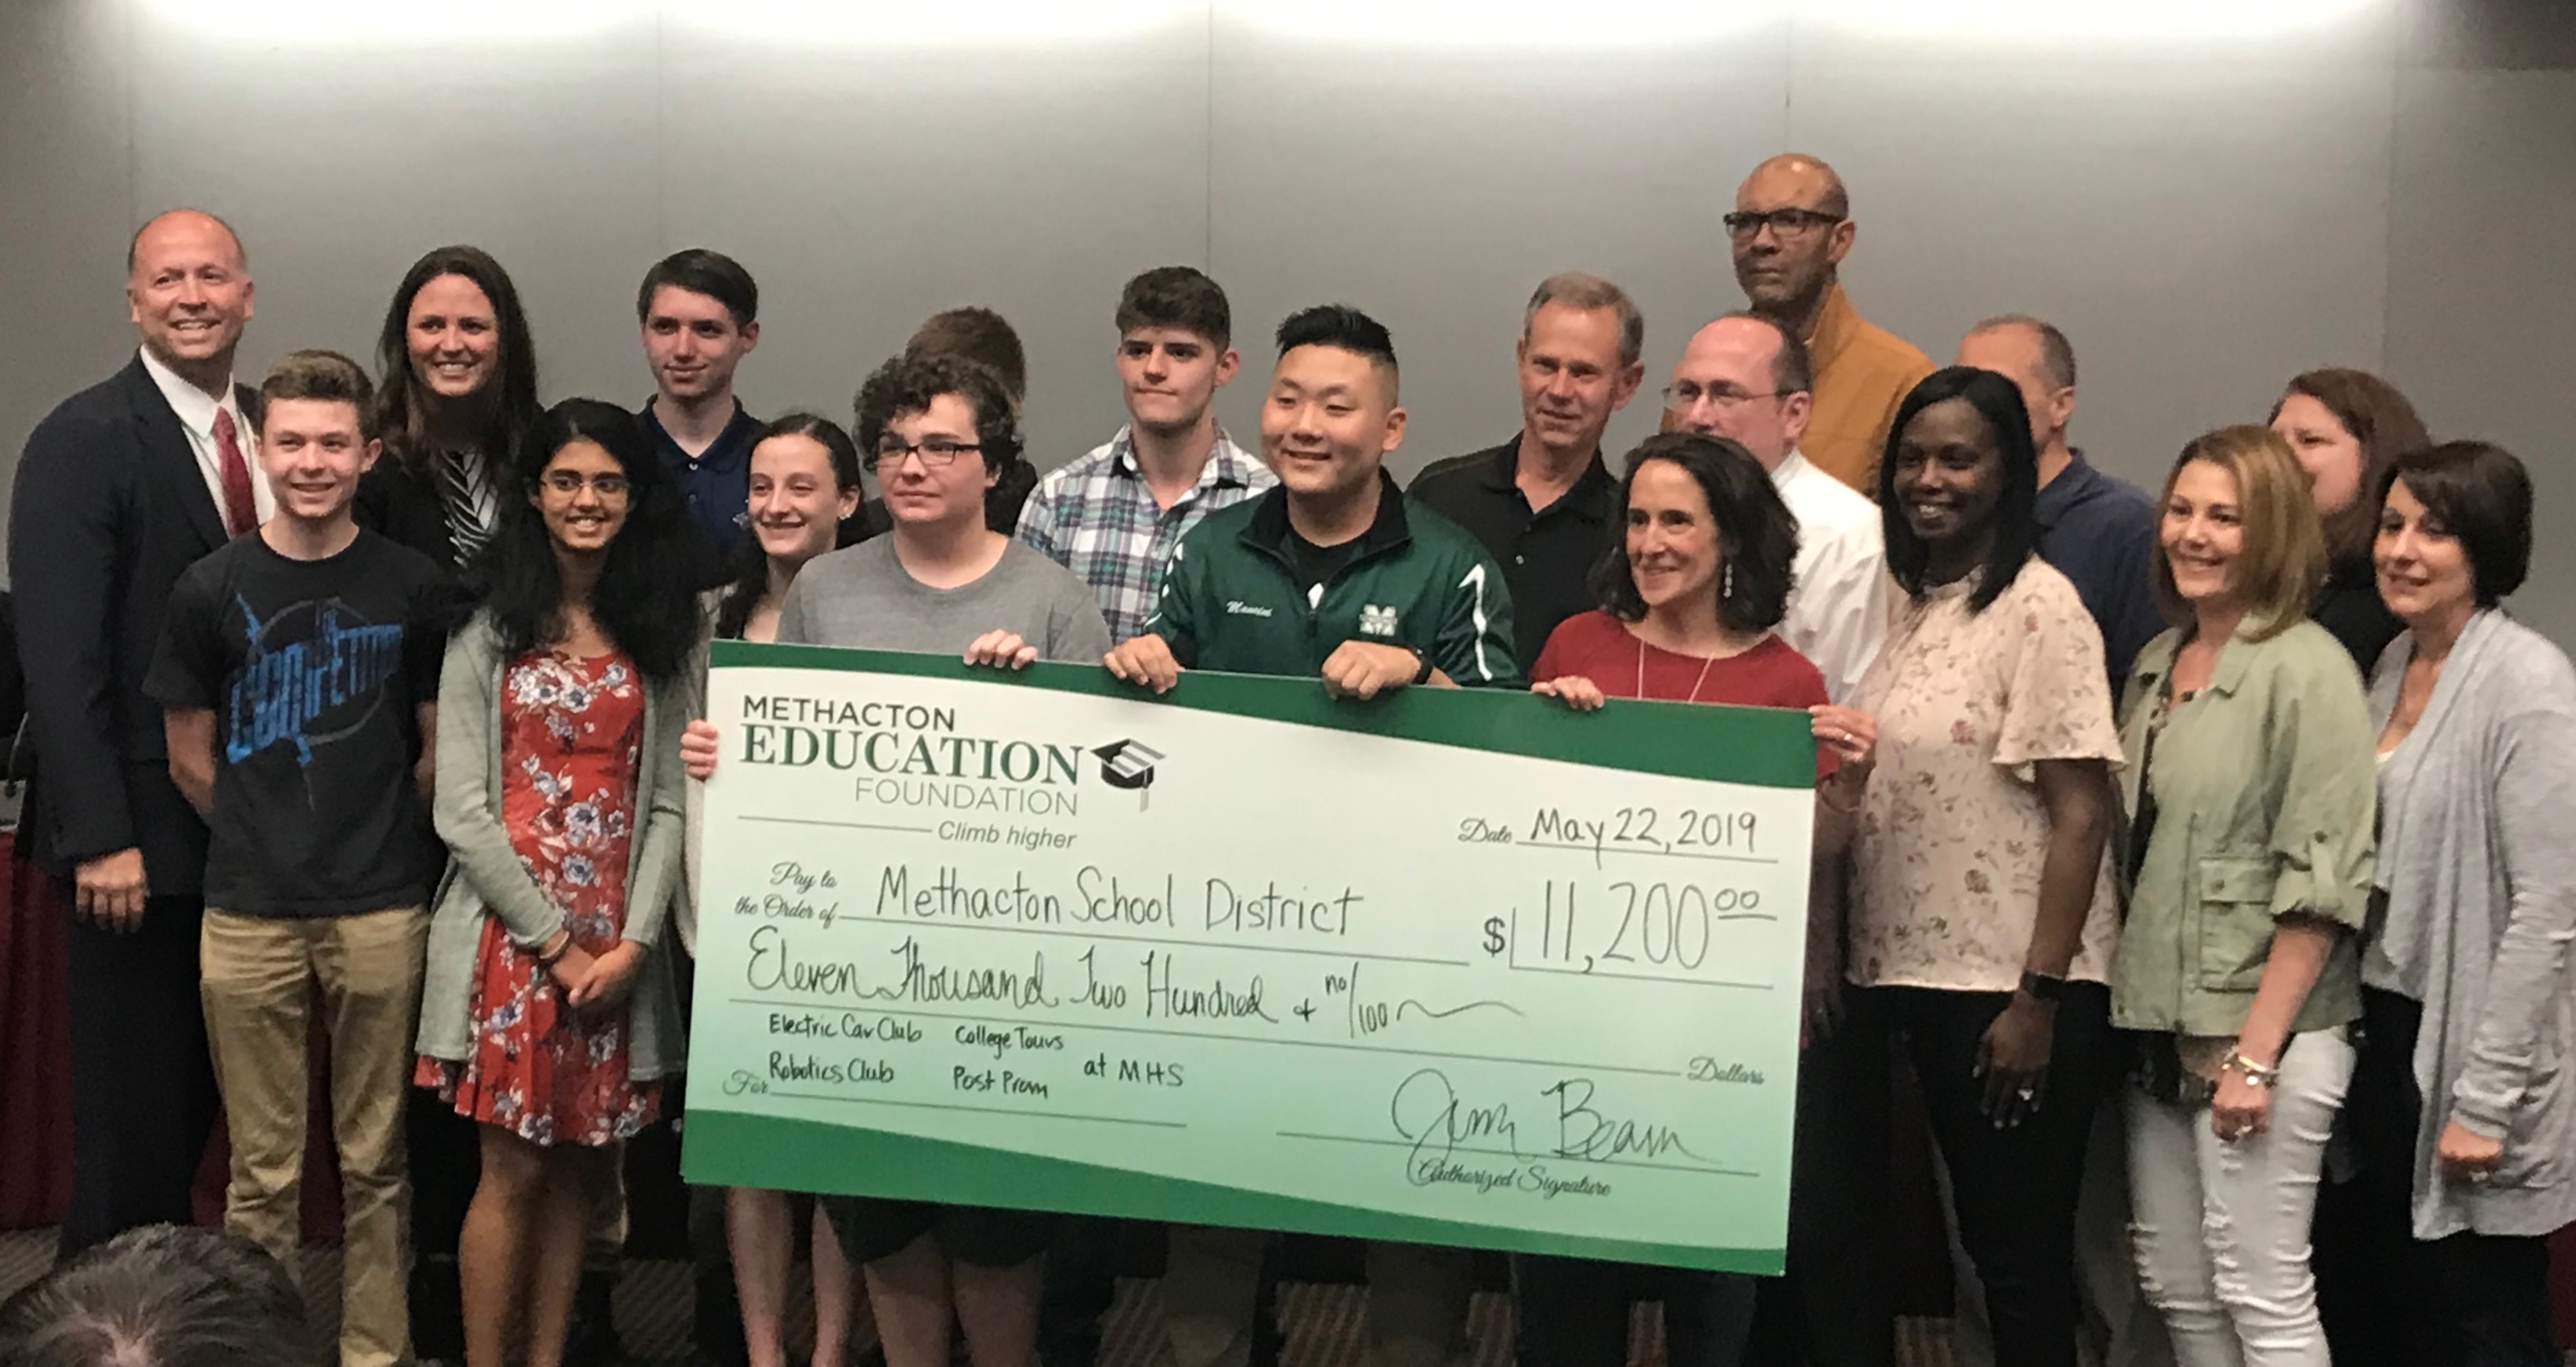 Foundation Awards $11,200 for High School Grants